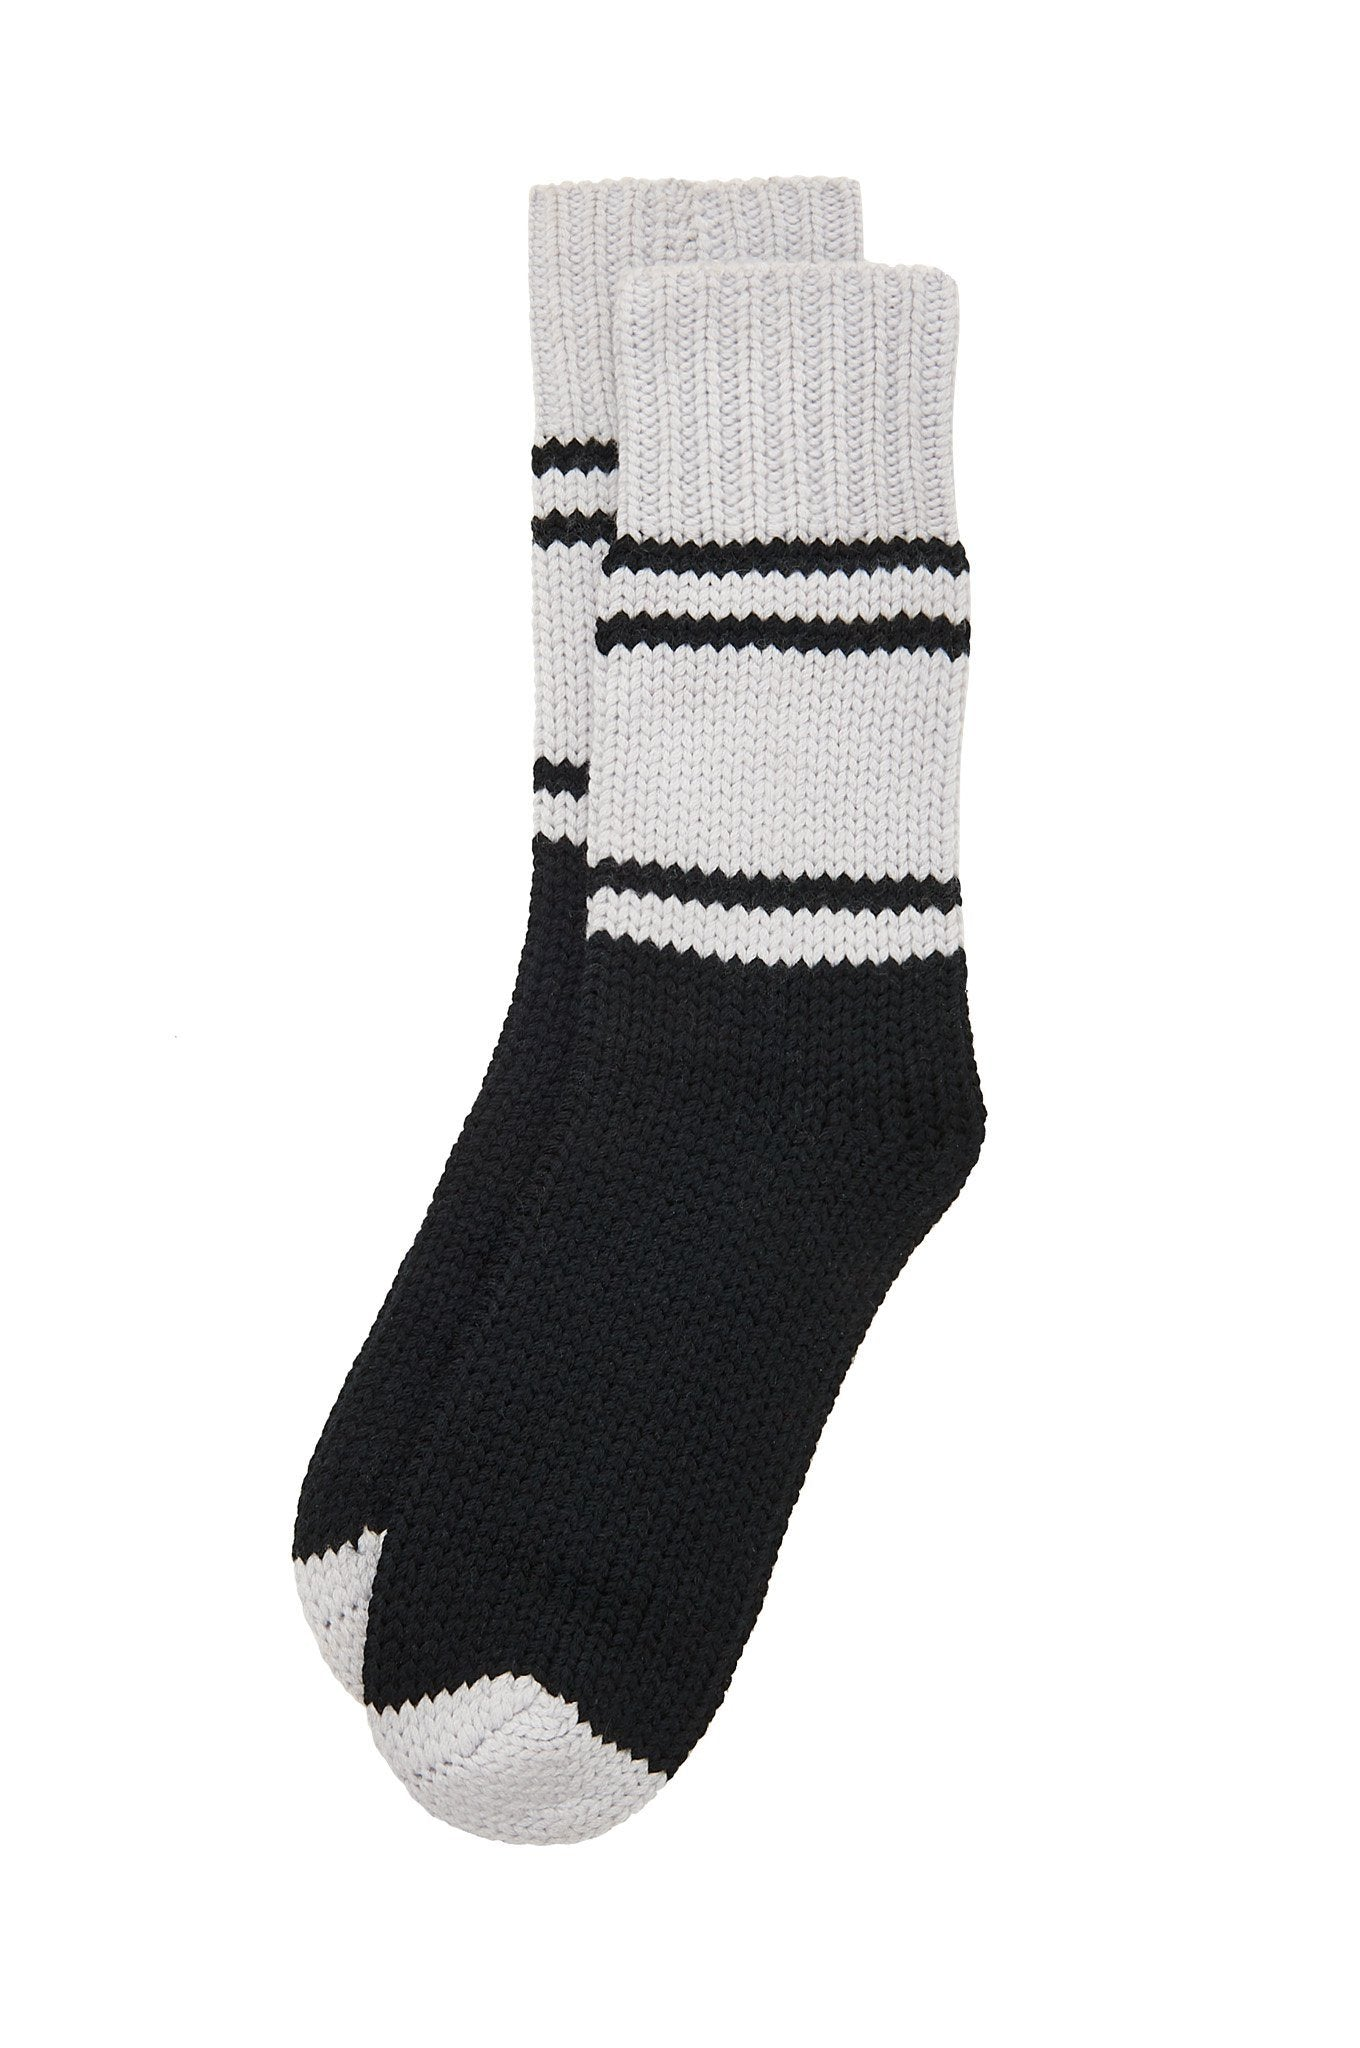 Accessories - CABIN Merino Wool Socks Ice